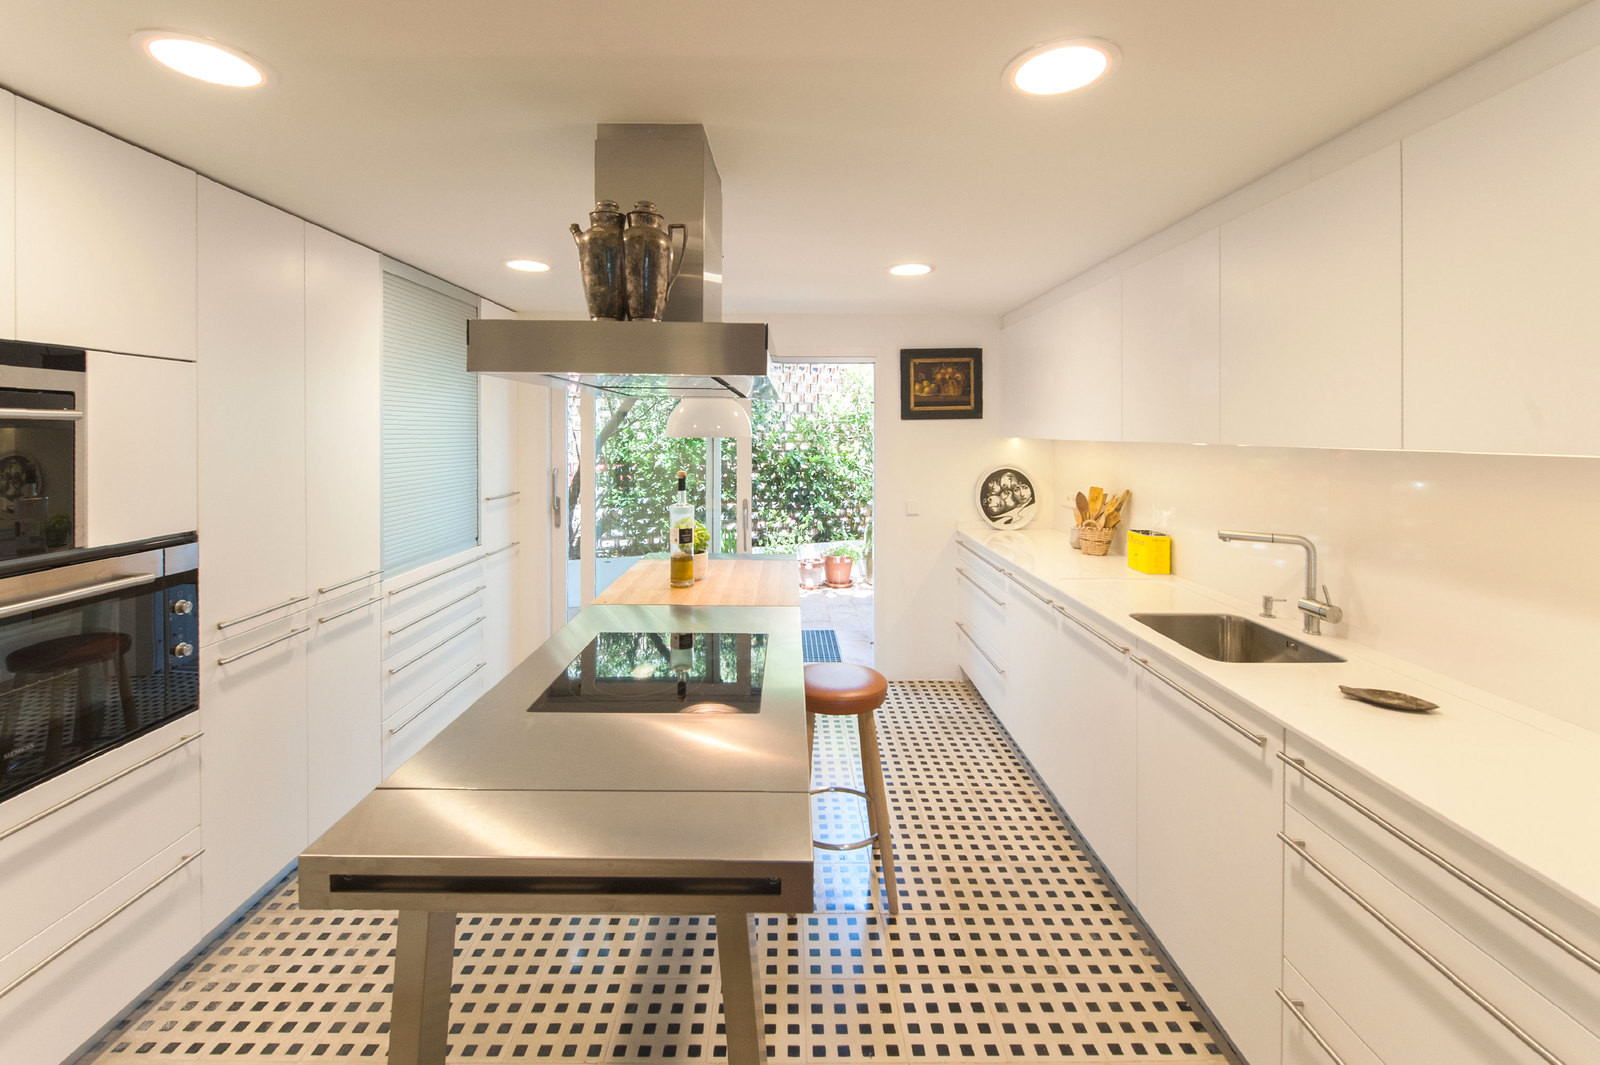 Renovation-of-a-private-house-just3ds.com-19